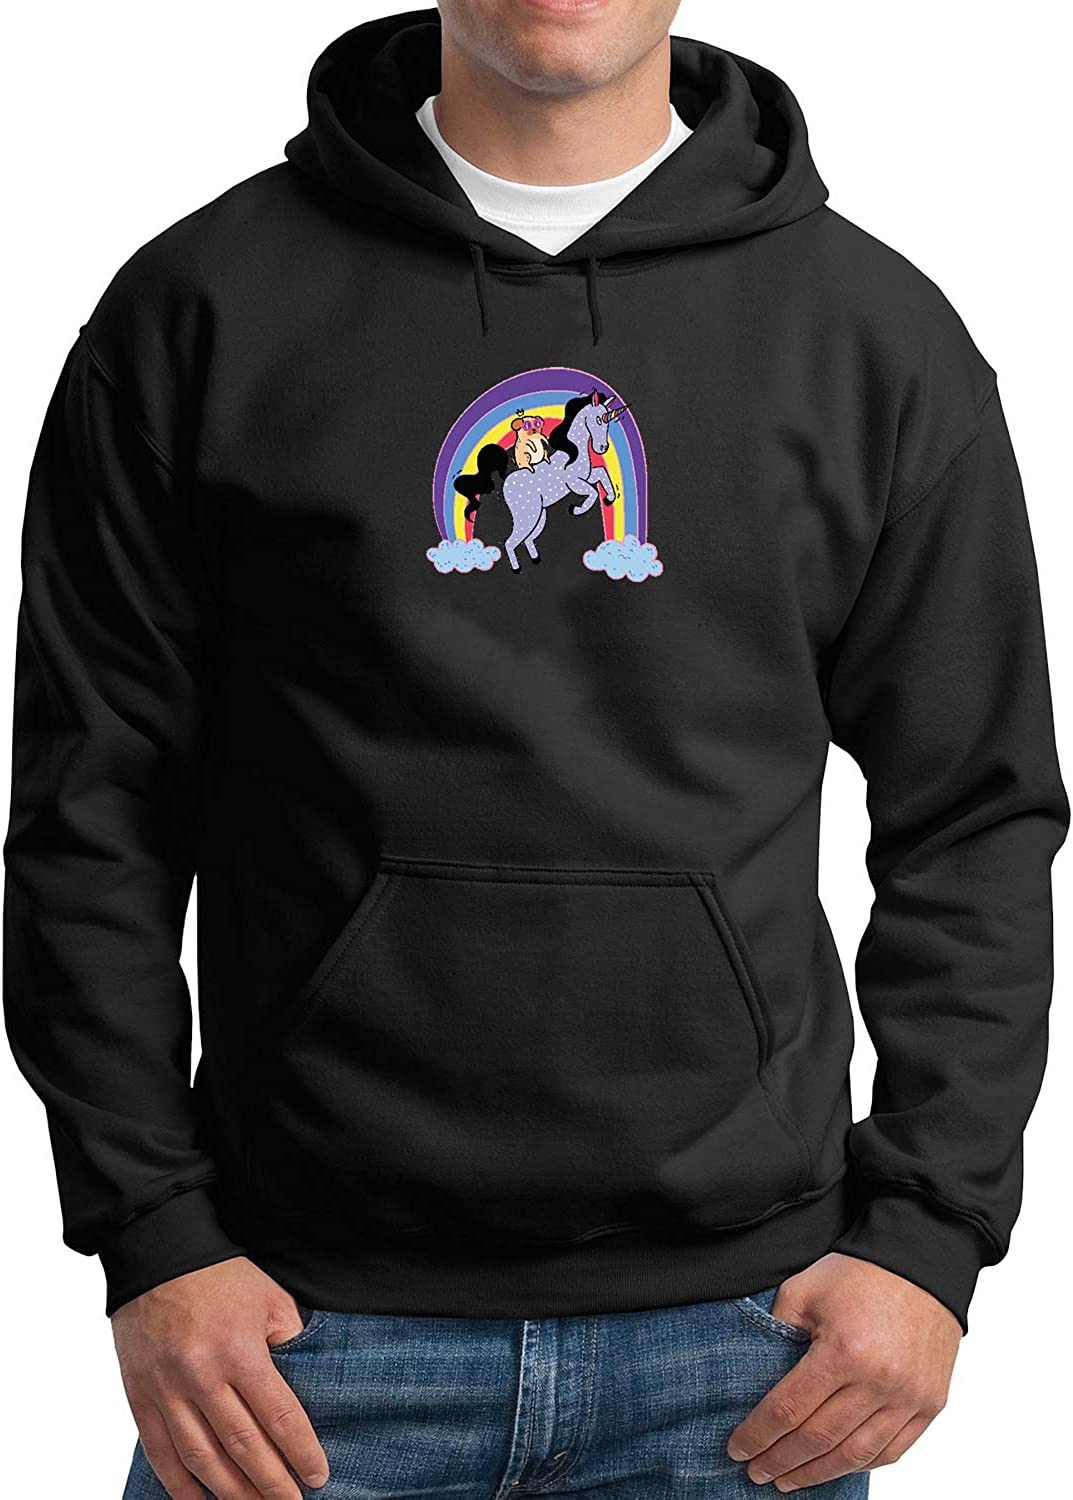 Magical Unicorn and Pug Rainbow/_MA3435 Hoodie Hoody Sweater Black